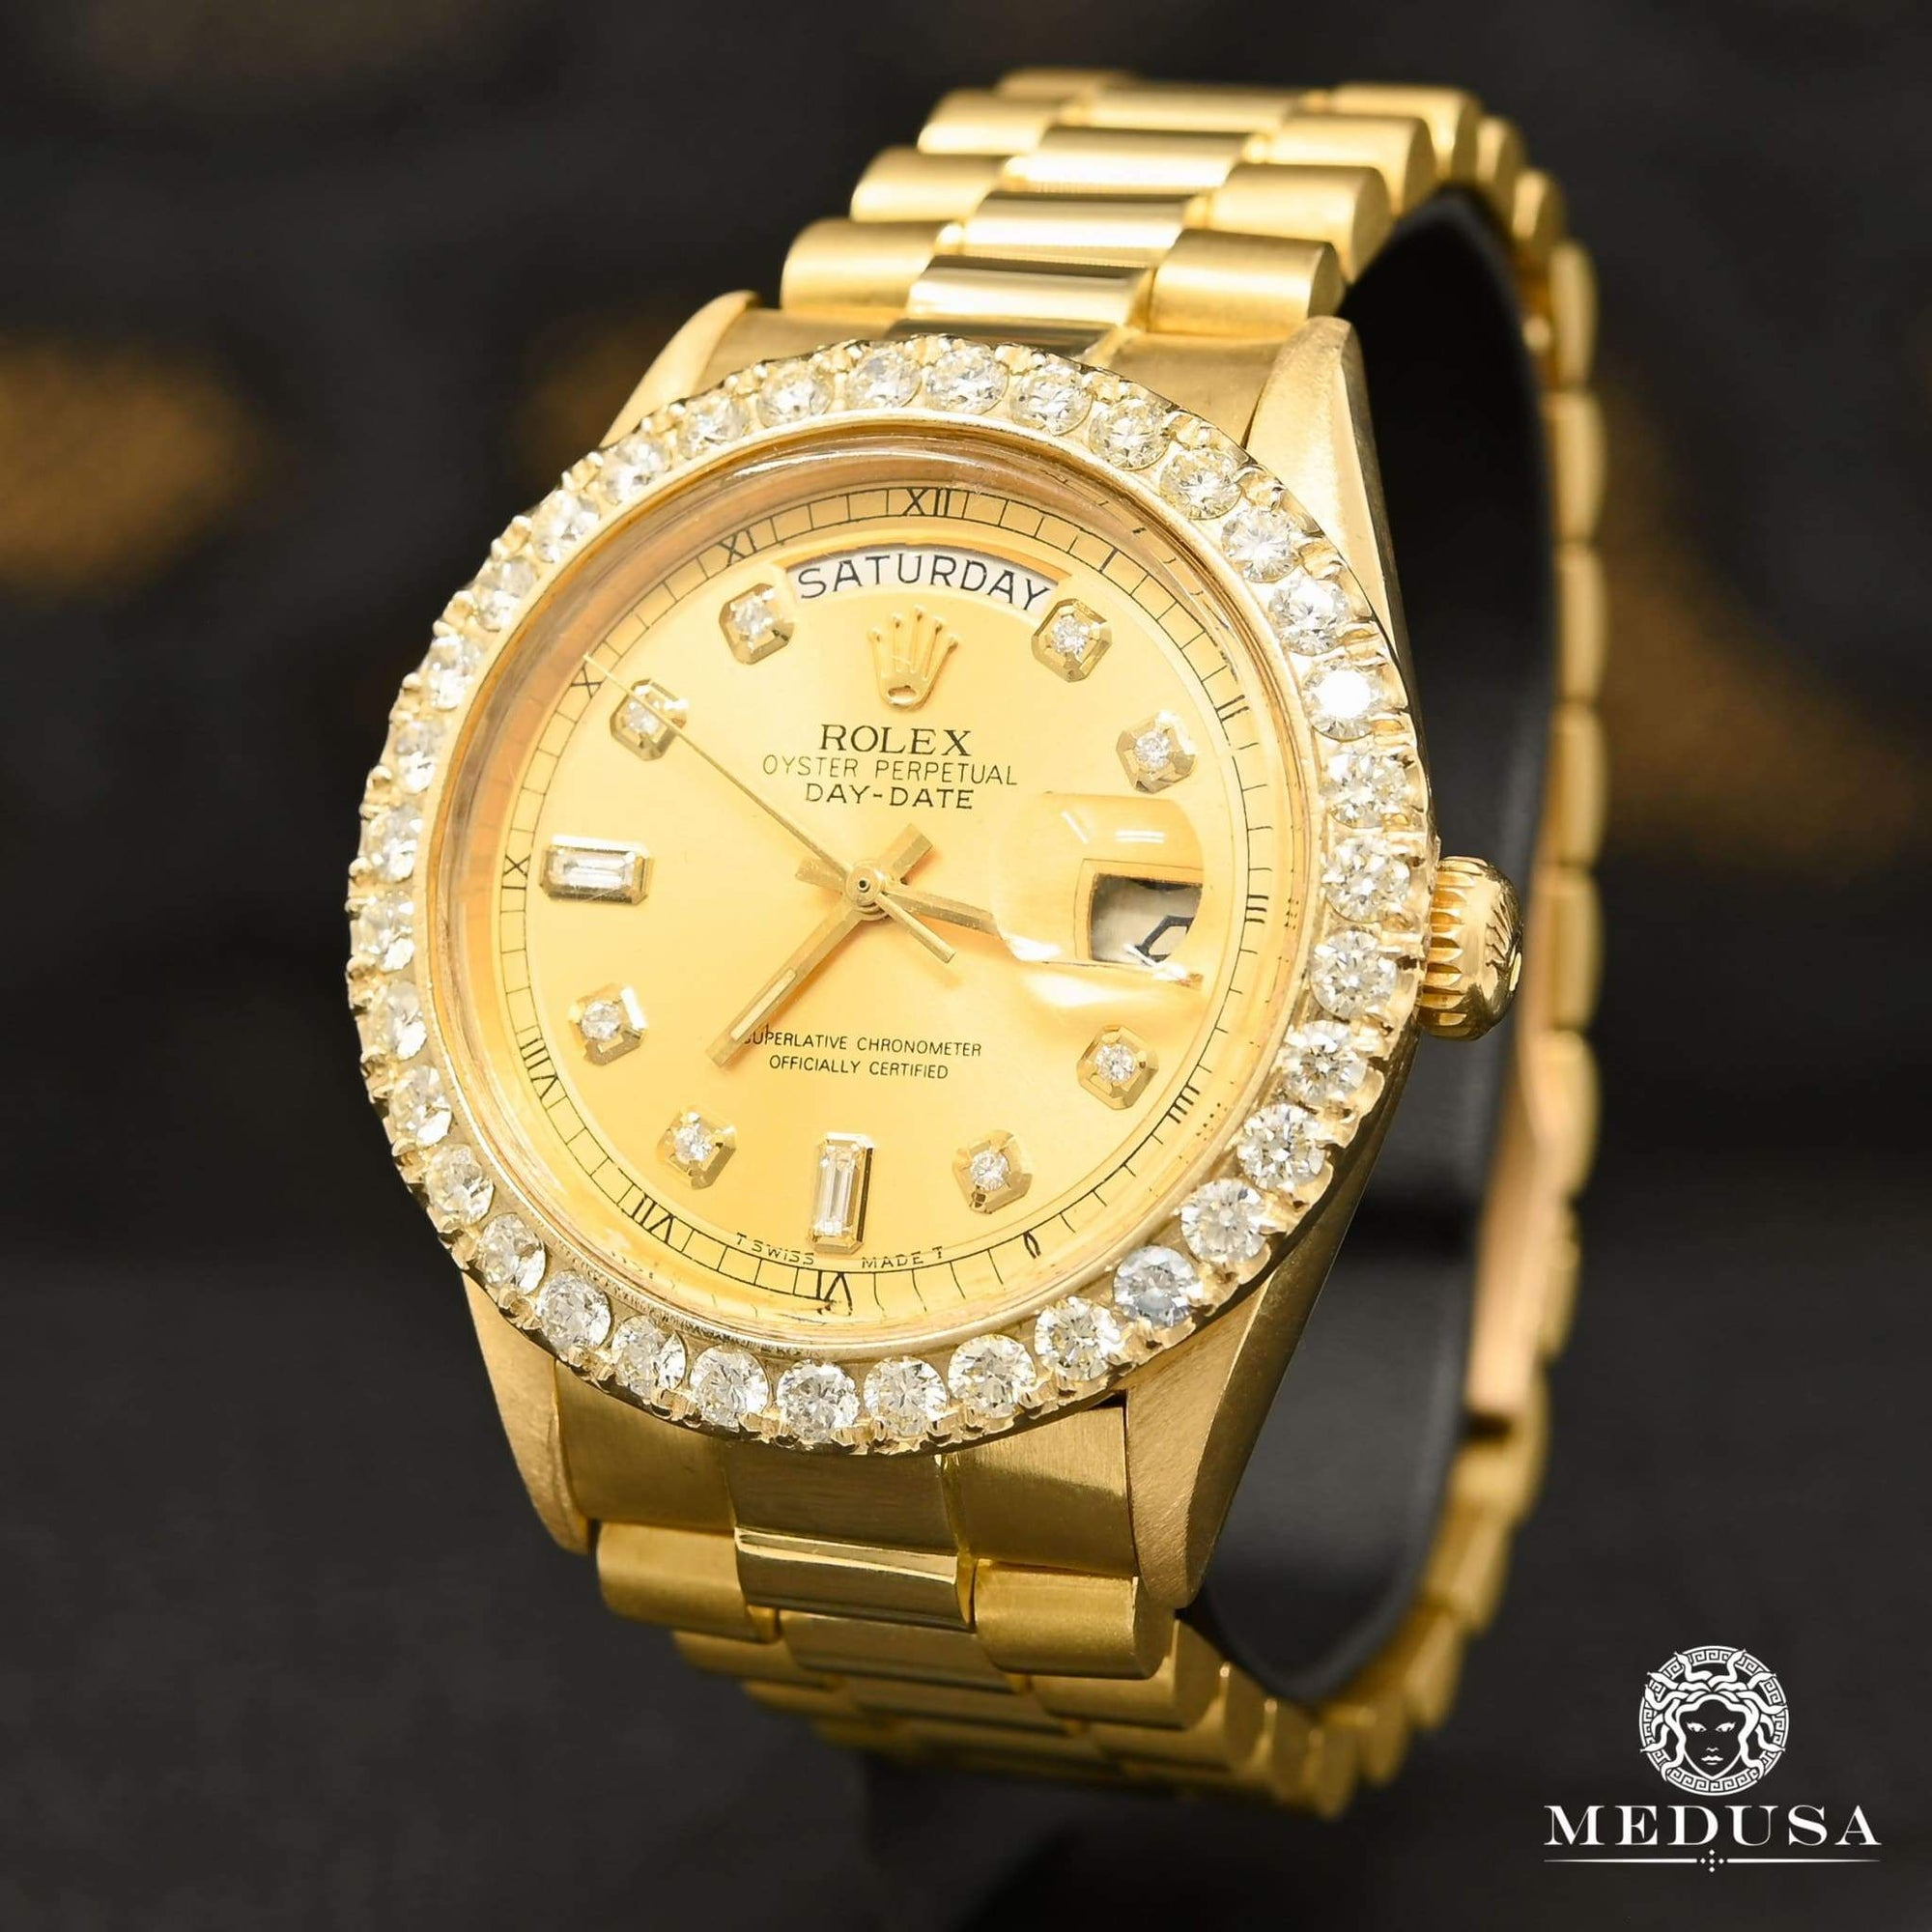 Rolex President Day-Date 36mm - Baguette Or